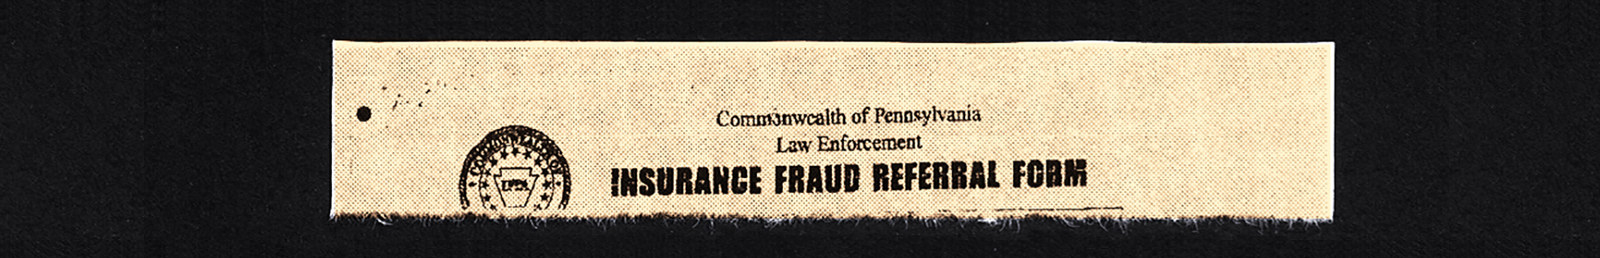 Insurance Companies Are Paying Cops To Investigate Their Own Customers